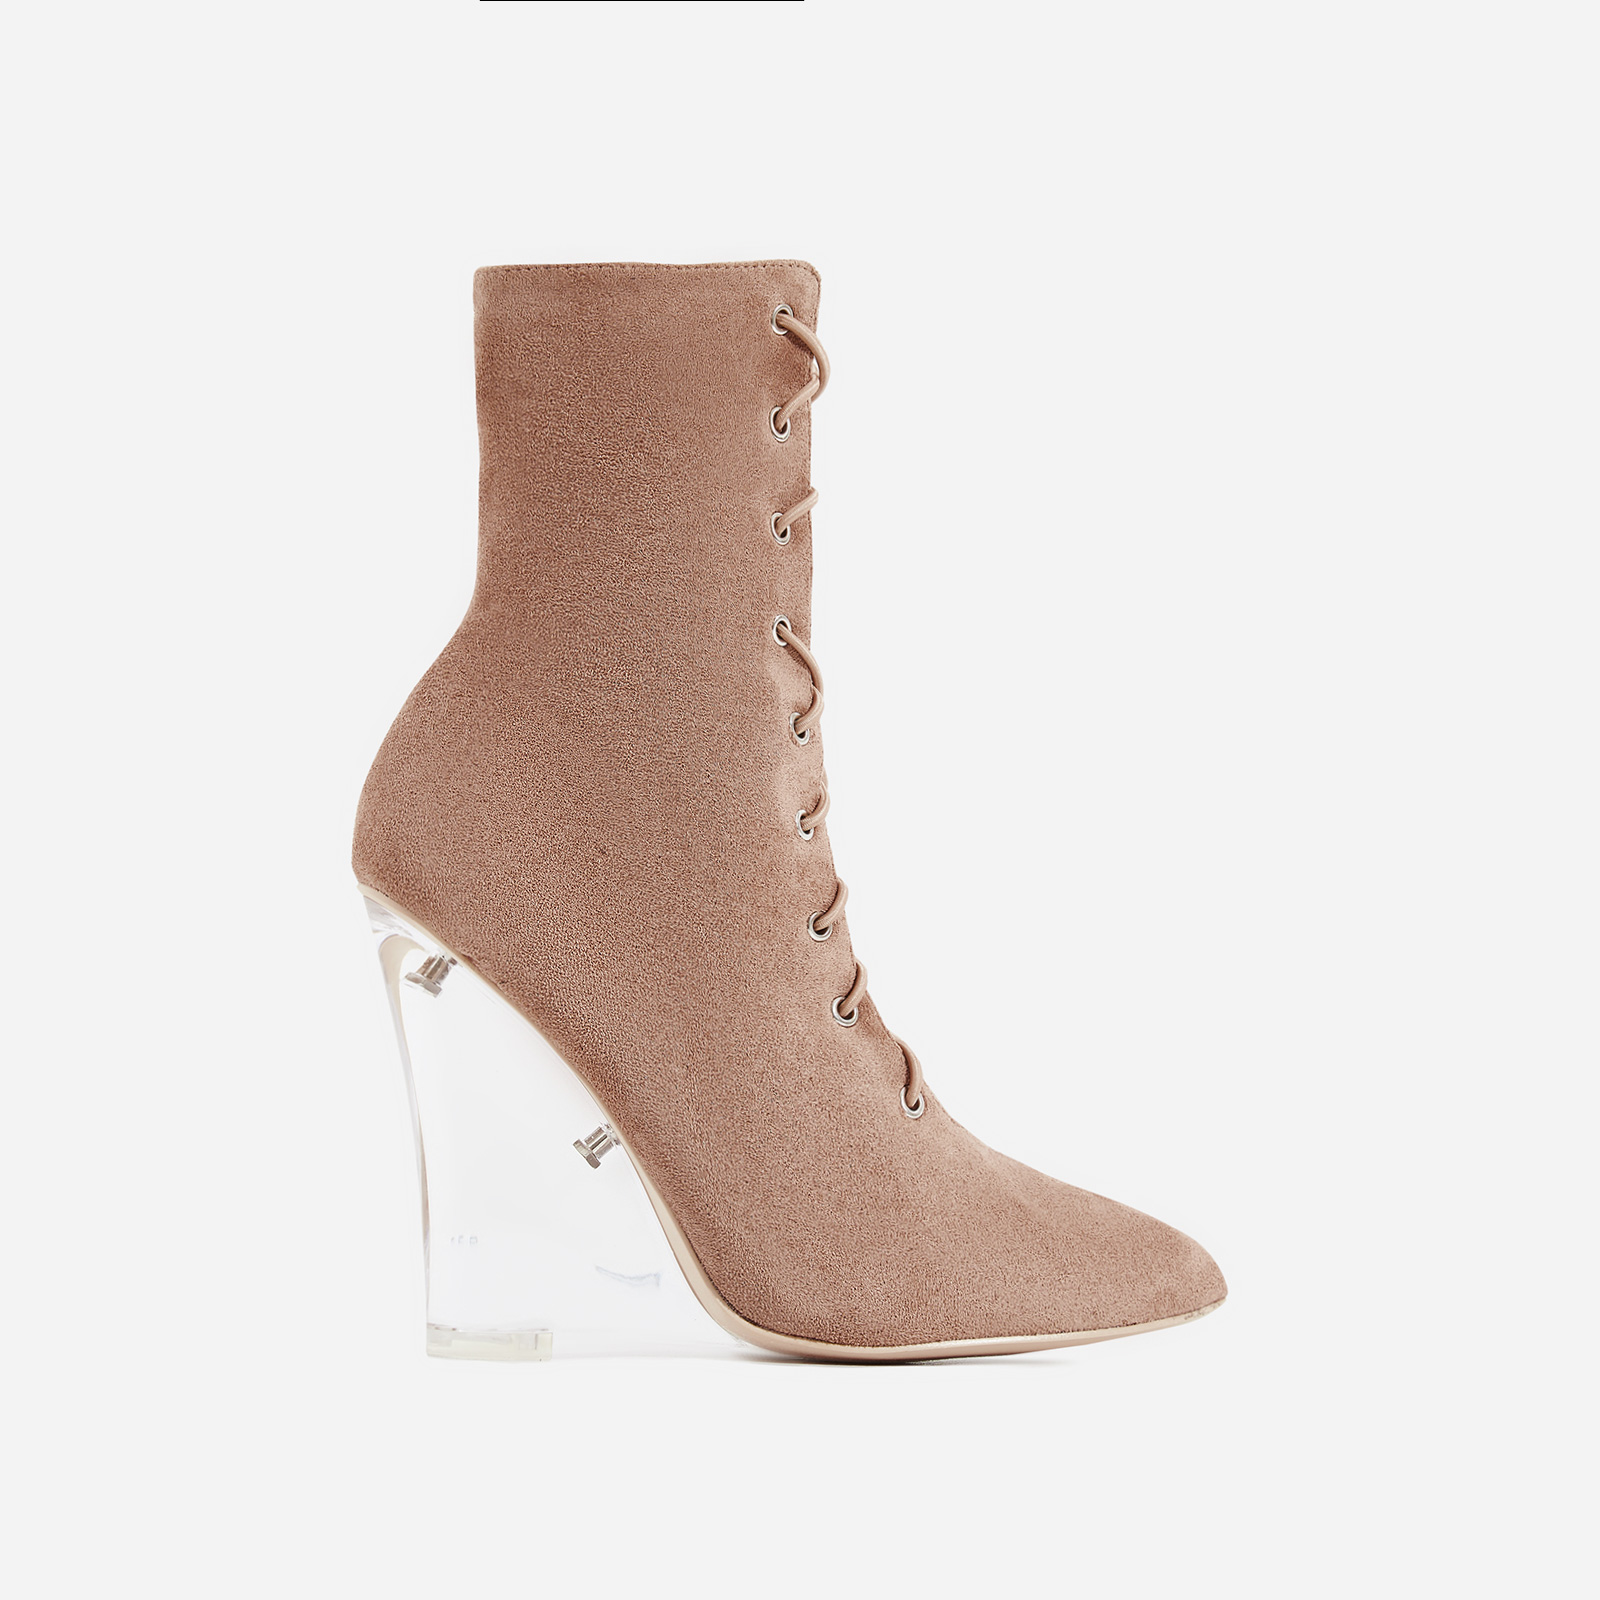 Turnaround Perspex Wedge Lace Up Ankle Boot In Nude Faux Suede